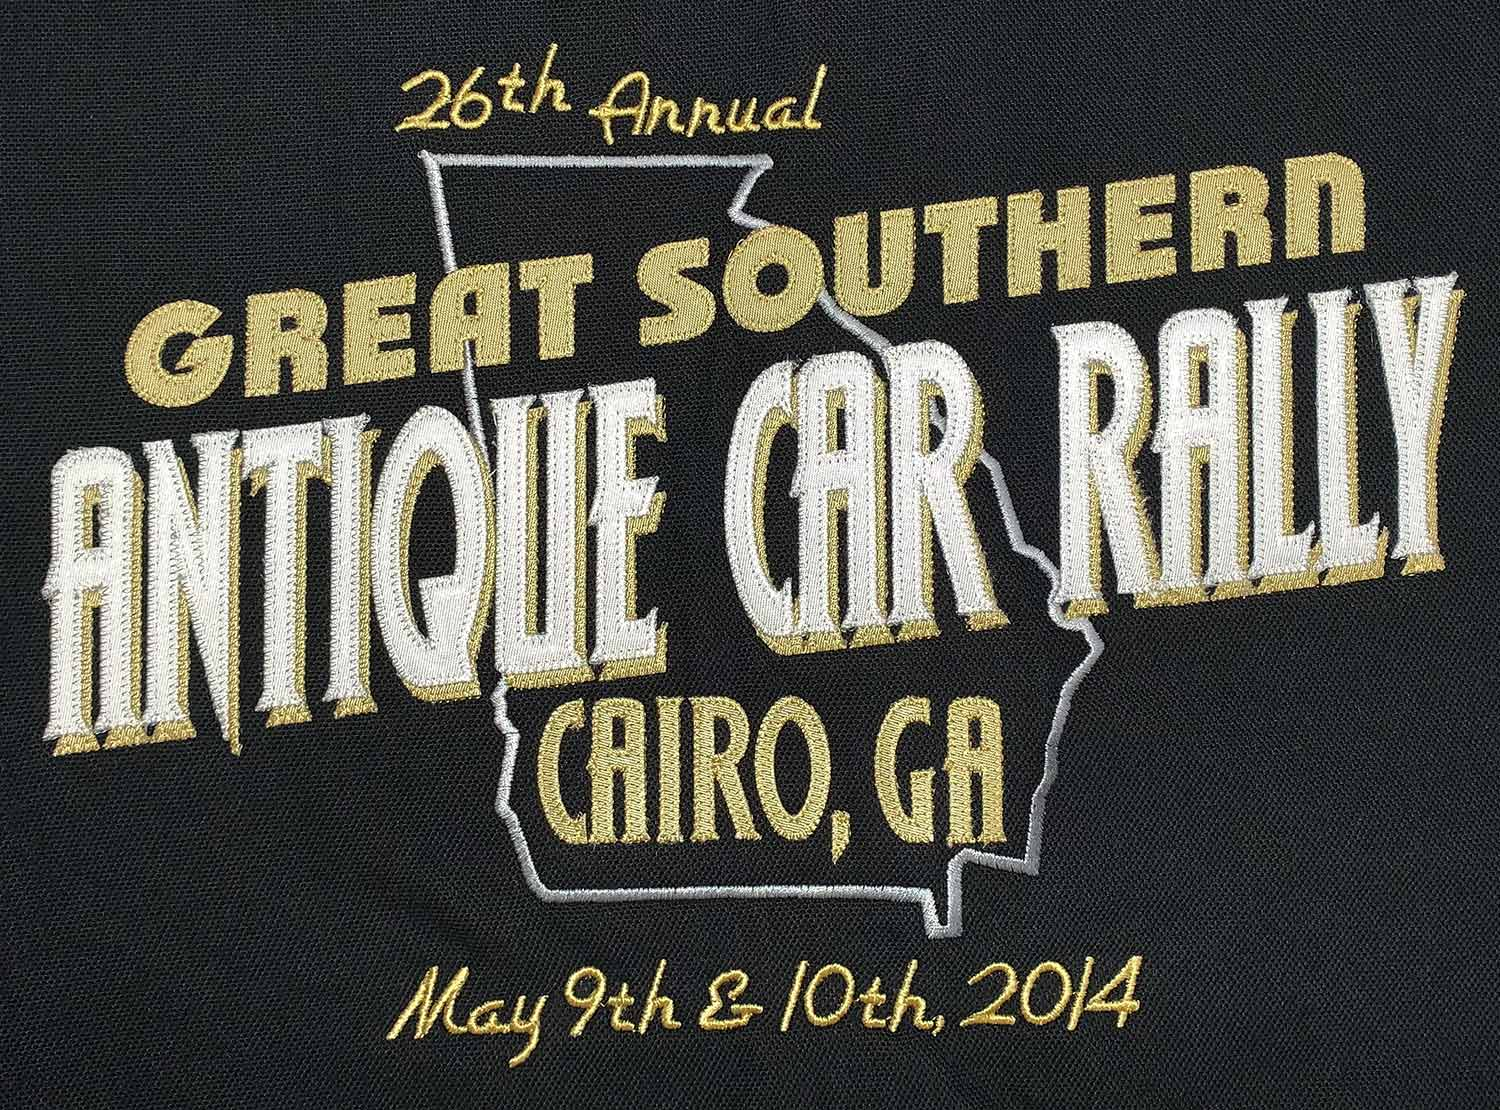 KYC_GREAT-SOUTHERN-ANTIQUE-CAR-RALLY-TWILL_web.jpg